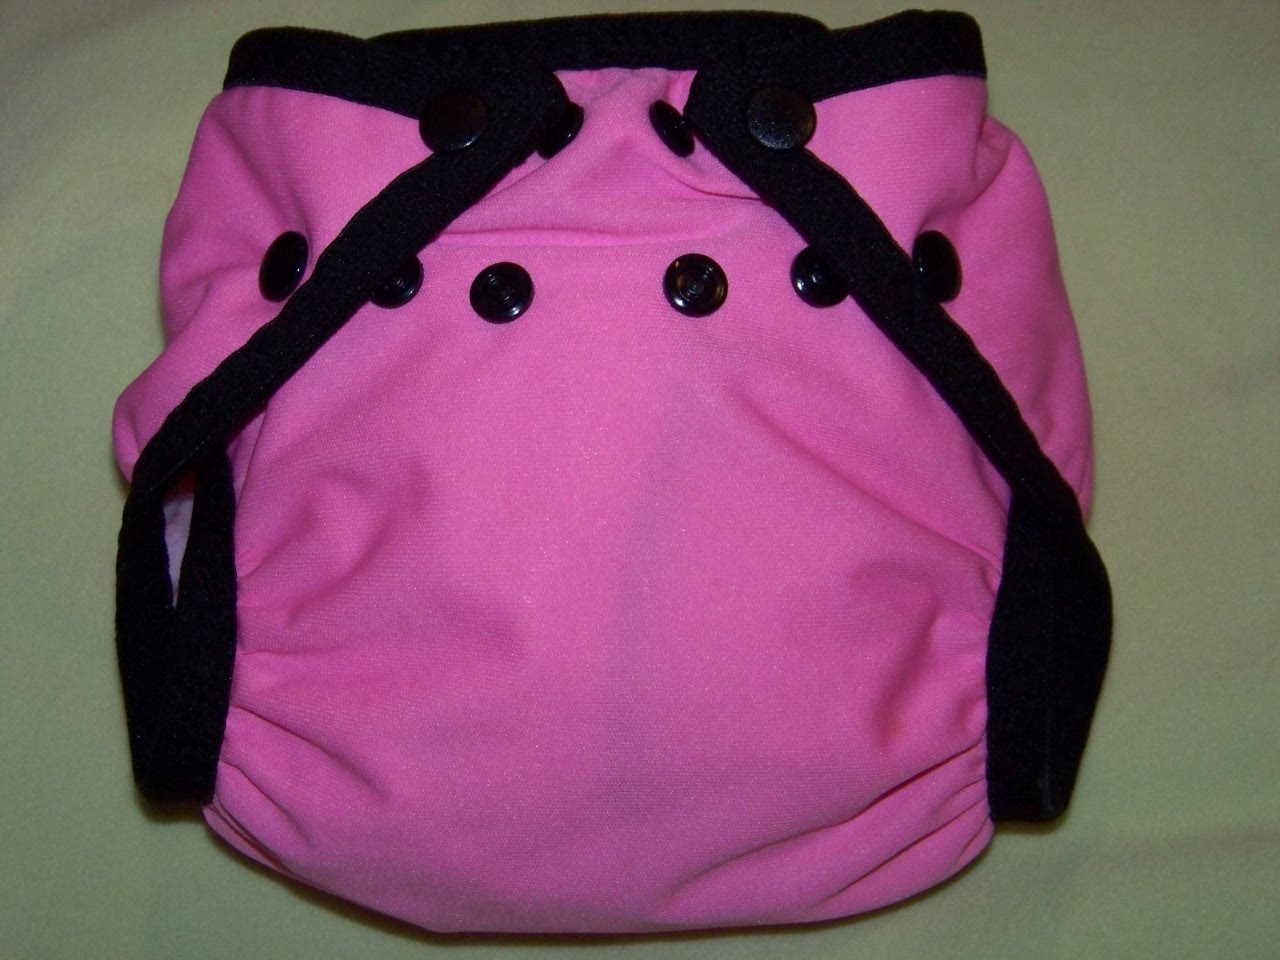 Raspberry & Black Pocket Diaper - Small